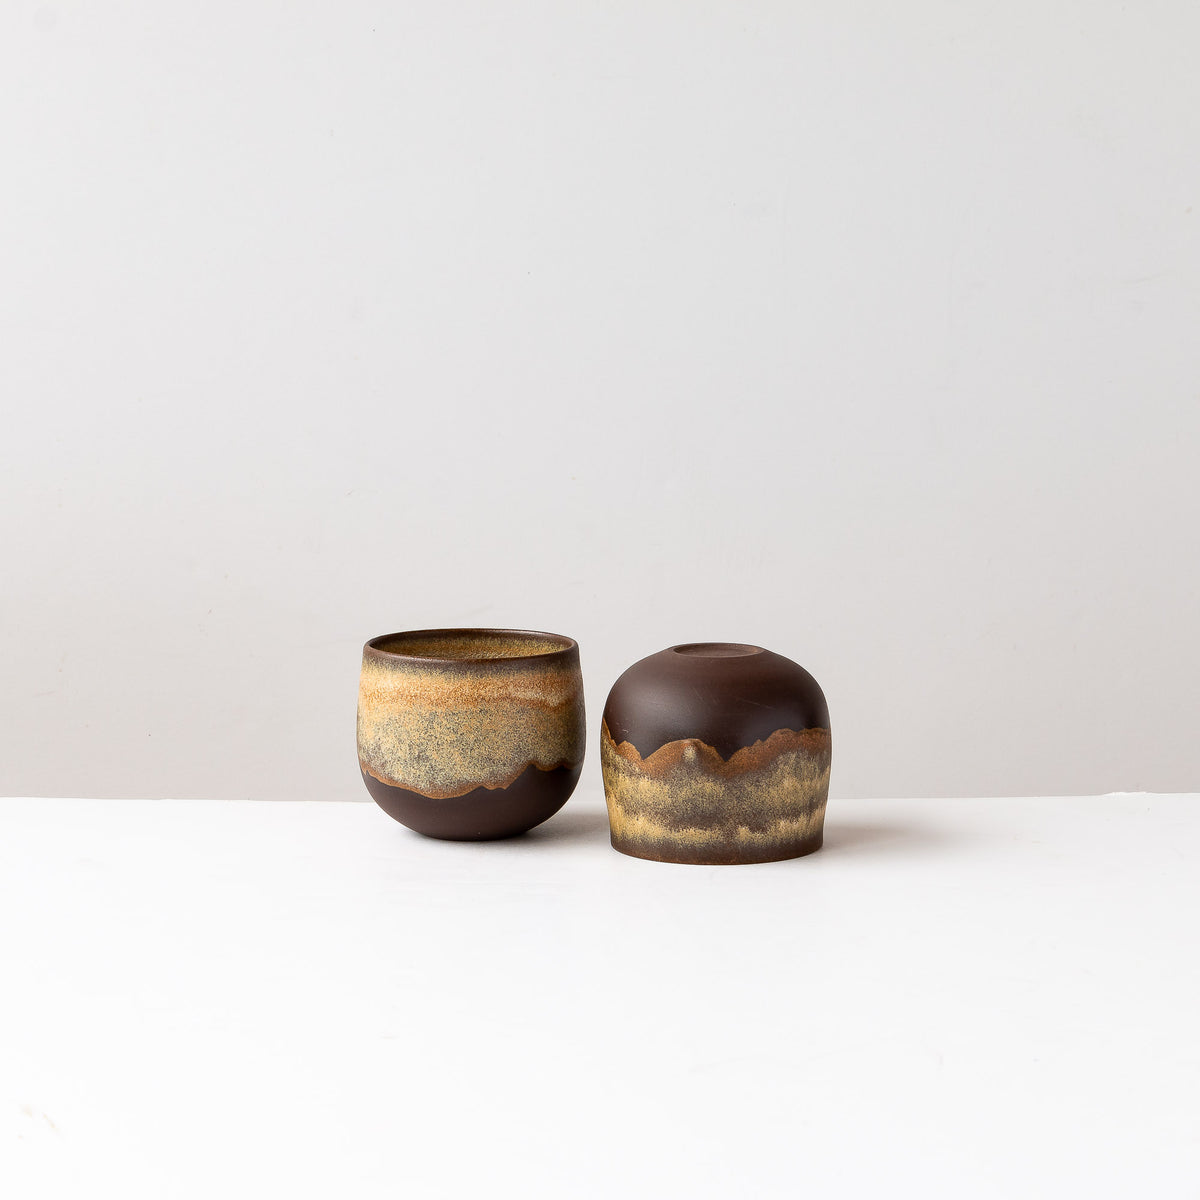 Two Handmade Tea Bowl in Black Stoneware - Sold by Chic & Basta